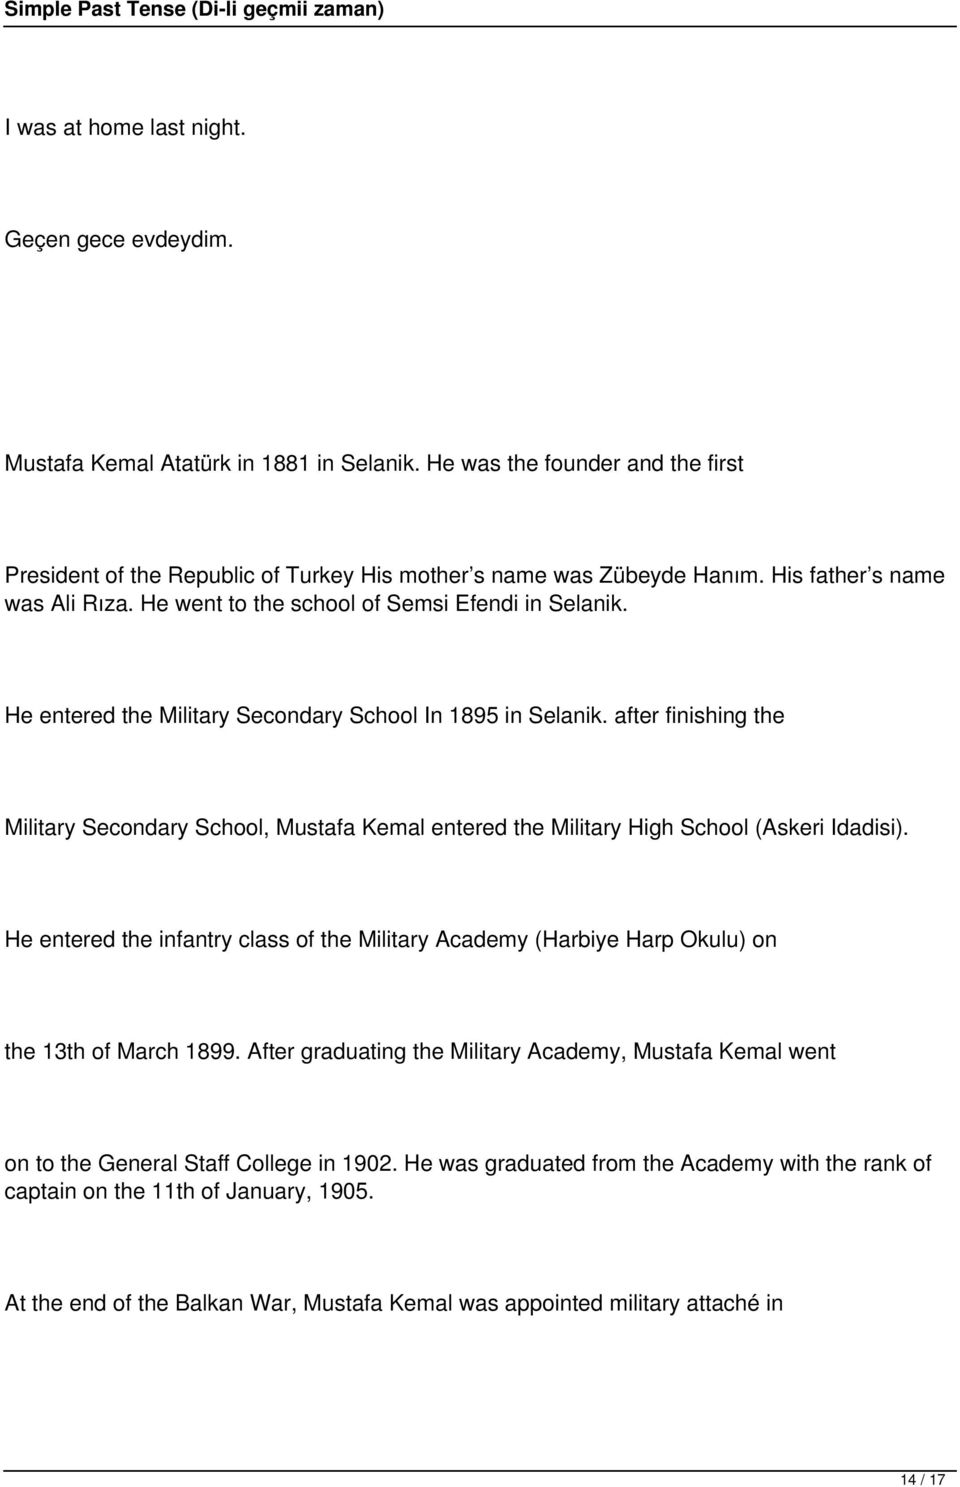 after finishing the Military Secondary School, Mustafa Kemal entered the Military High School (Askeri Idadisi).